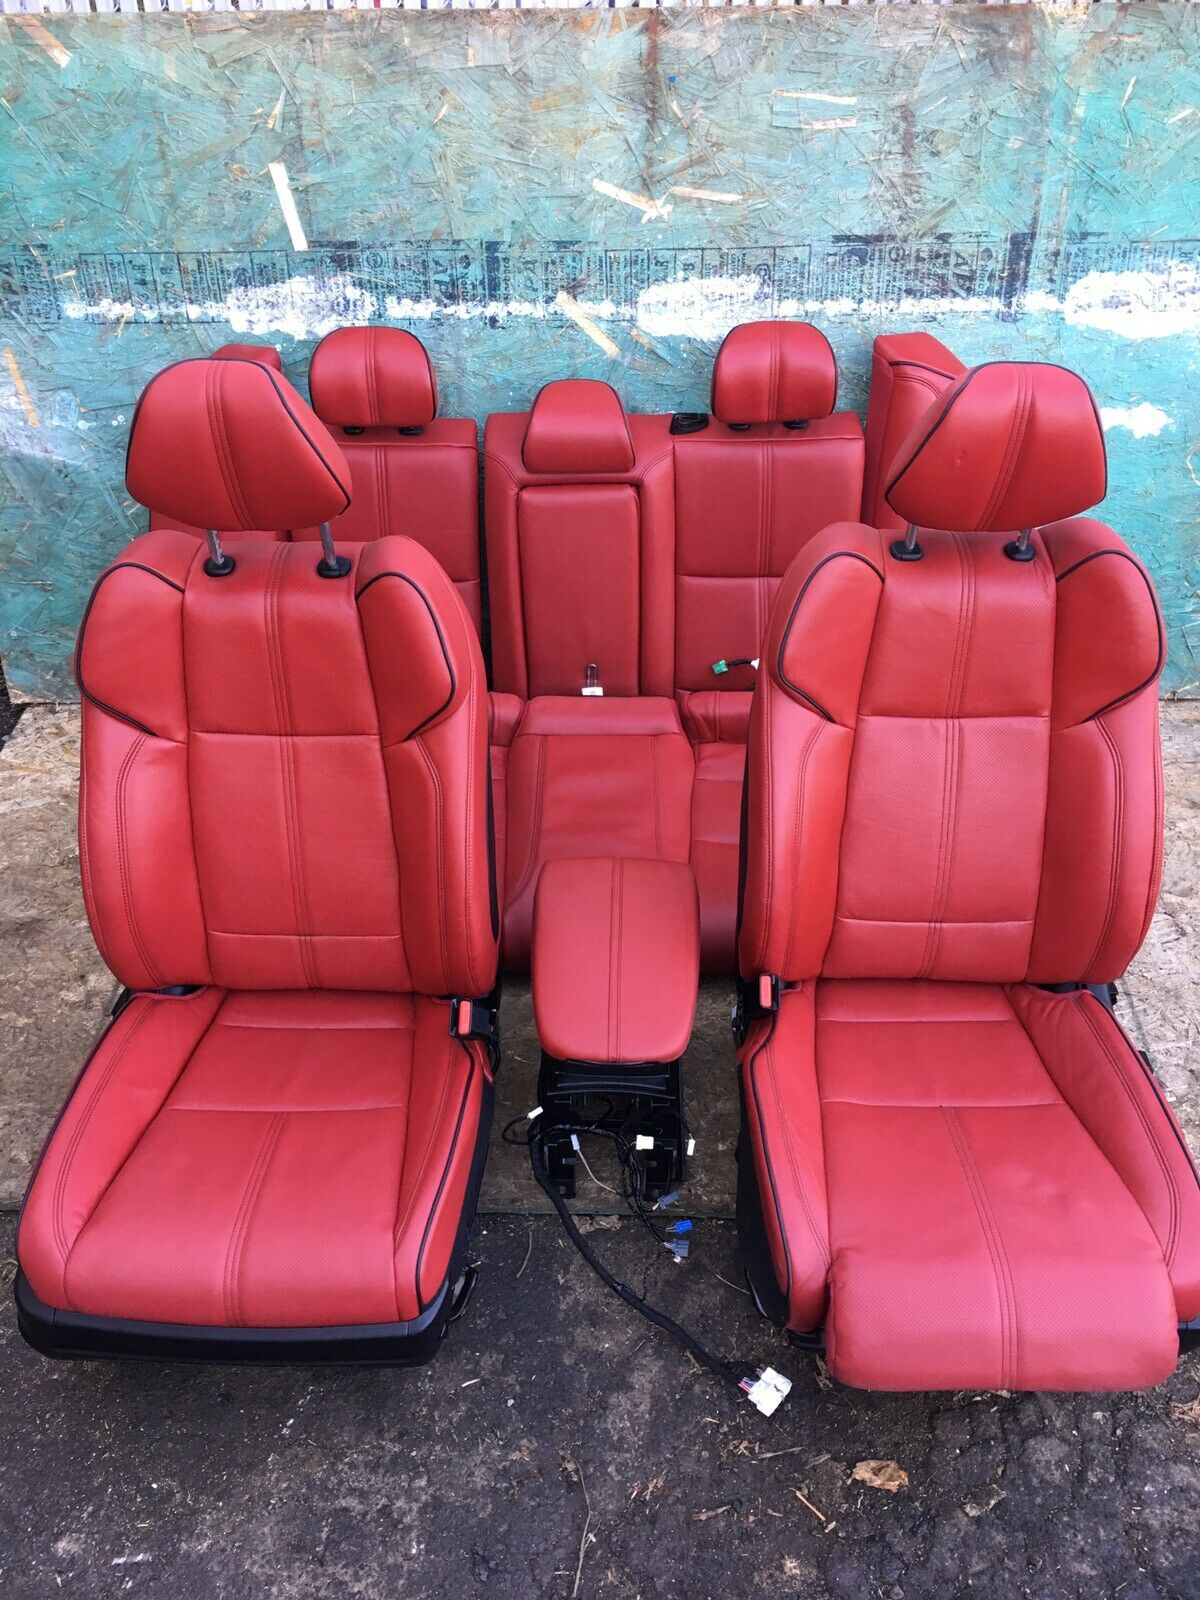 ACURA TLX A-SPEC 2015-2020 Red Full Leather Electric Power Seats No Airbags OEM